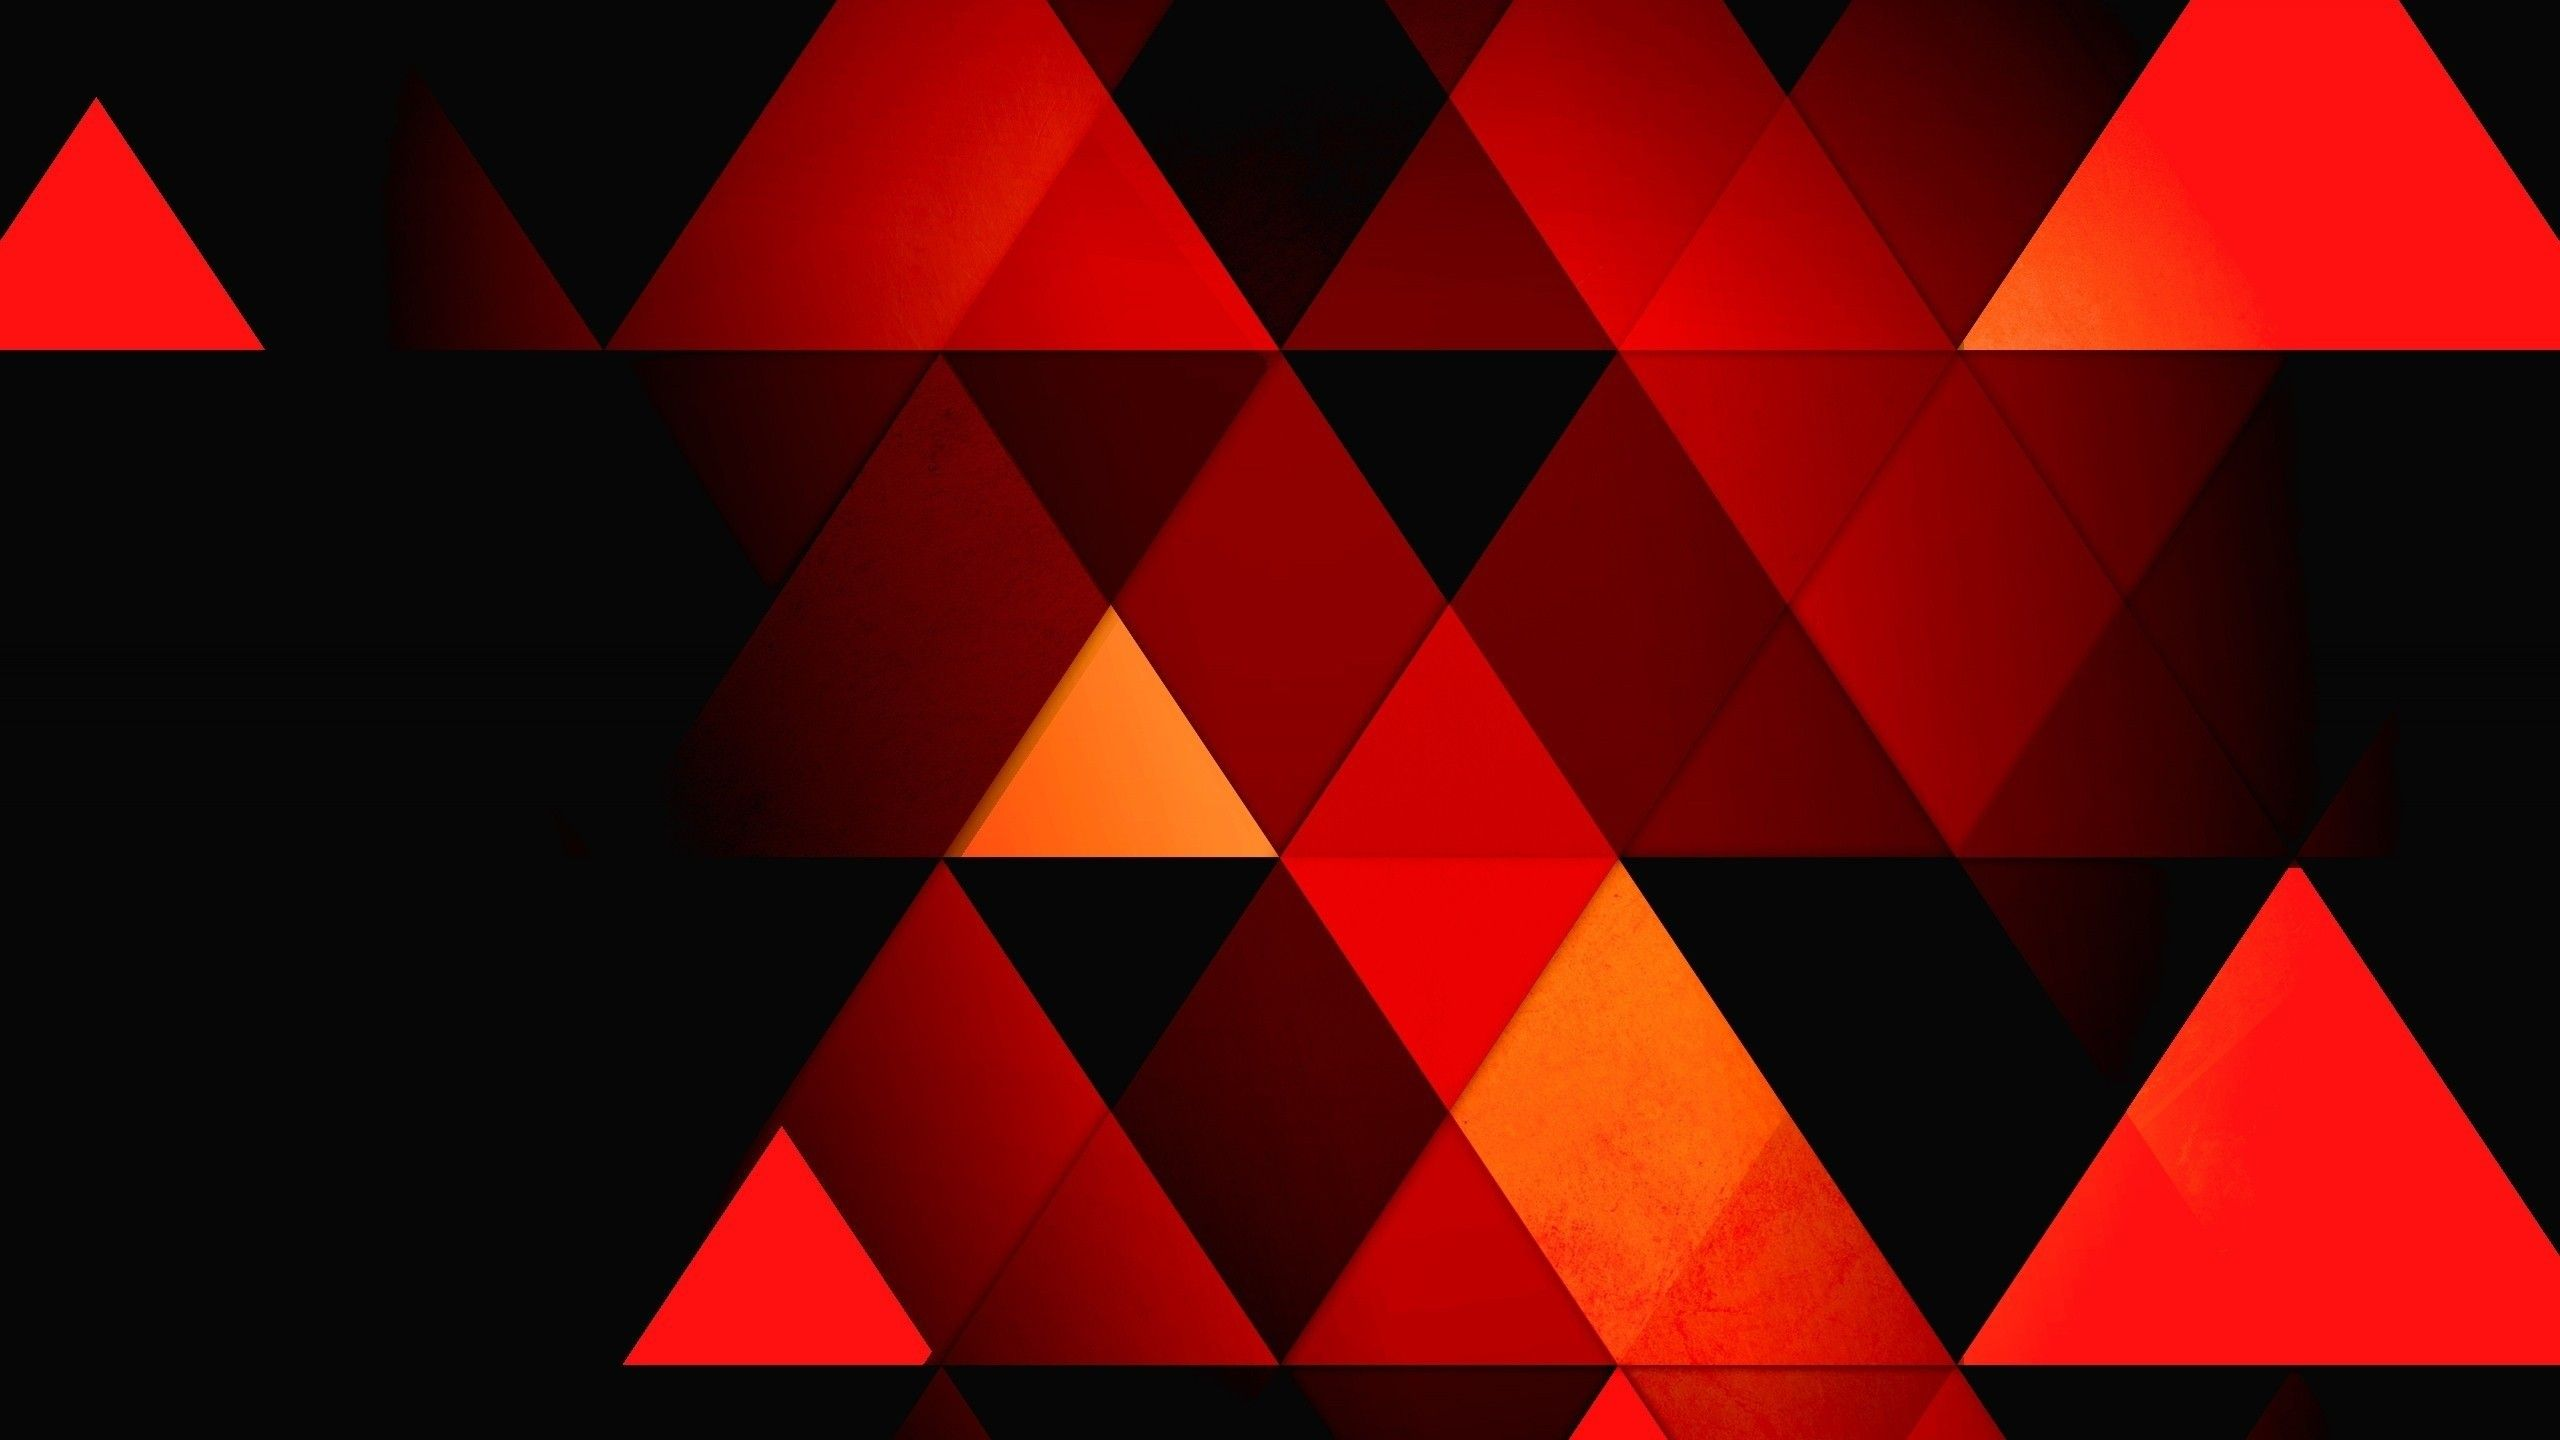 Orange Geometric Wallpapers   Top Orange Geometric 2560x1440